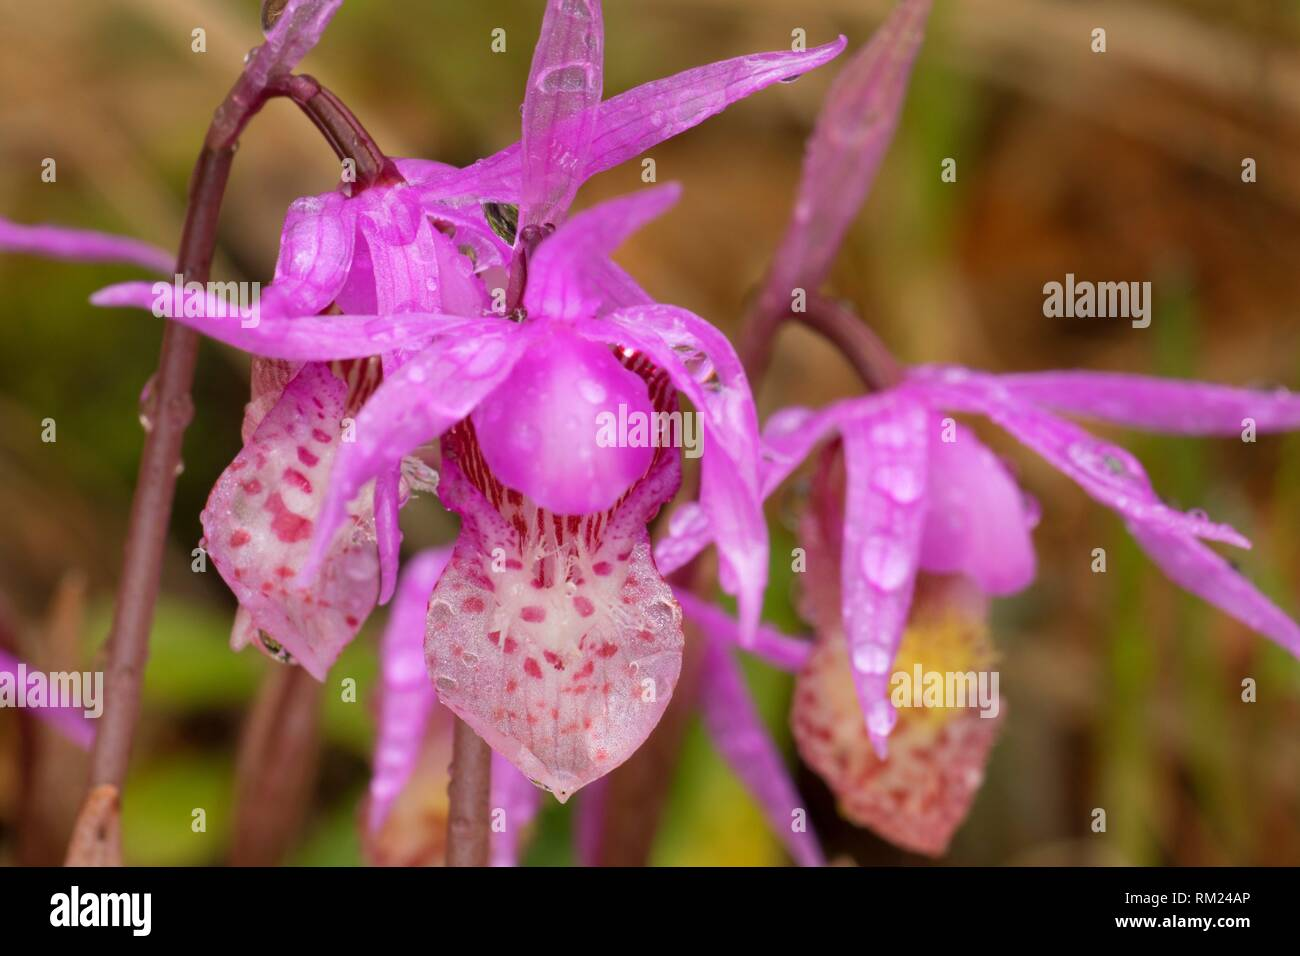 Fairy slipper along Historic Lolo Trail at Howard Creek, Lolo National Forest, Lewis and Clark National Historic Trail, Nez Perce National Historic - Stock Image